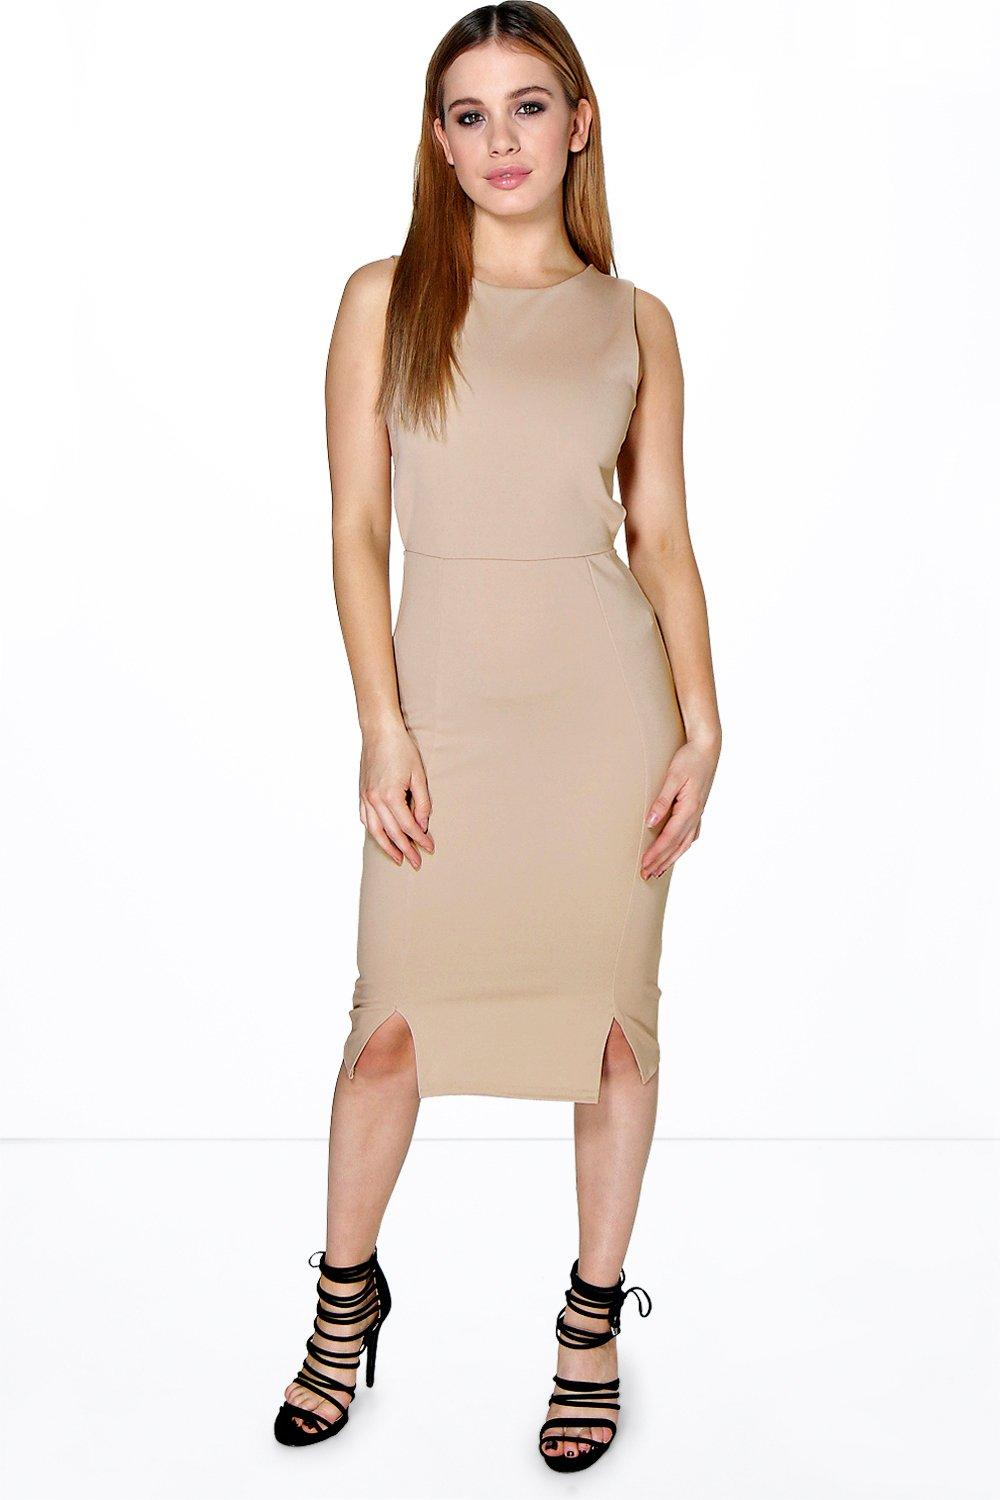 Petite Paula Split Hem Cut Out Back Bodycon